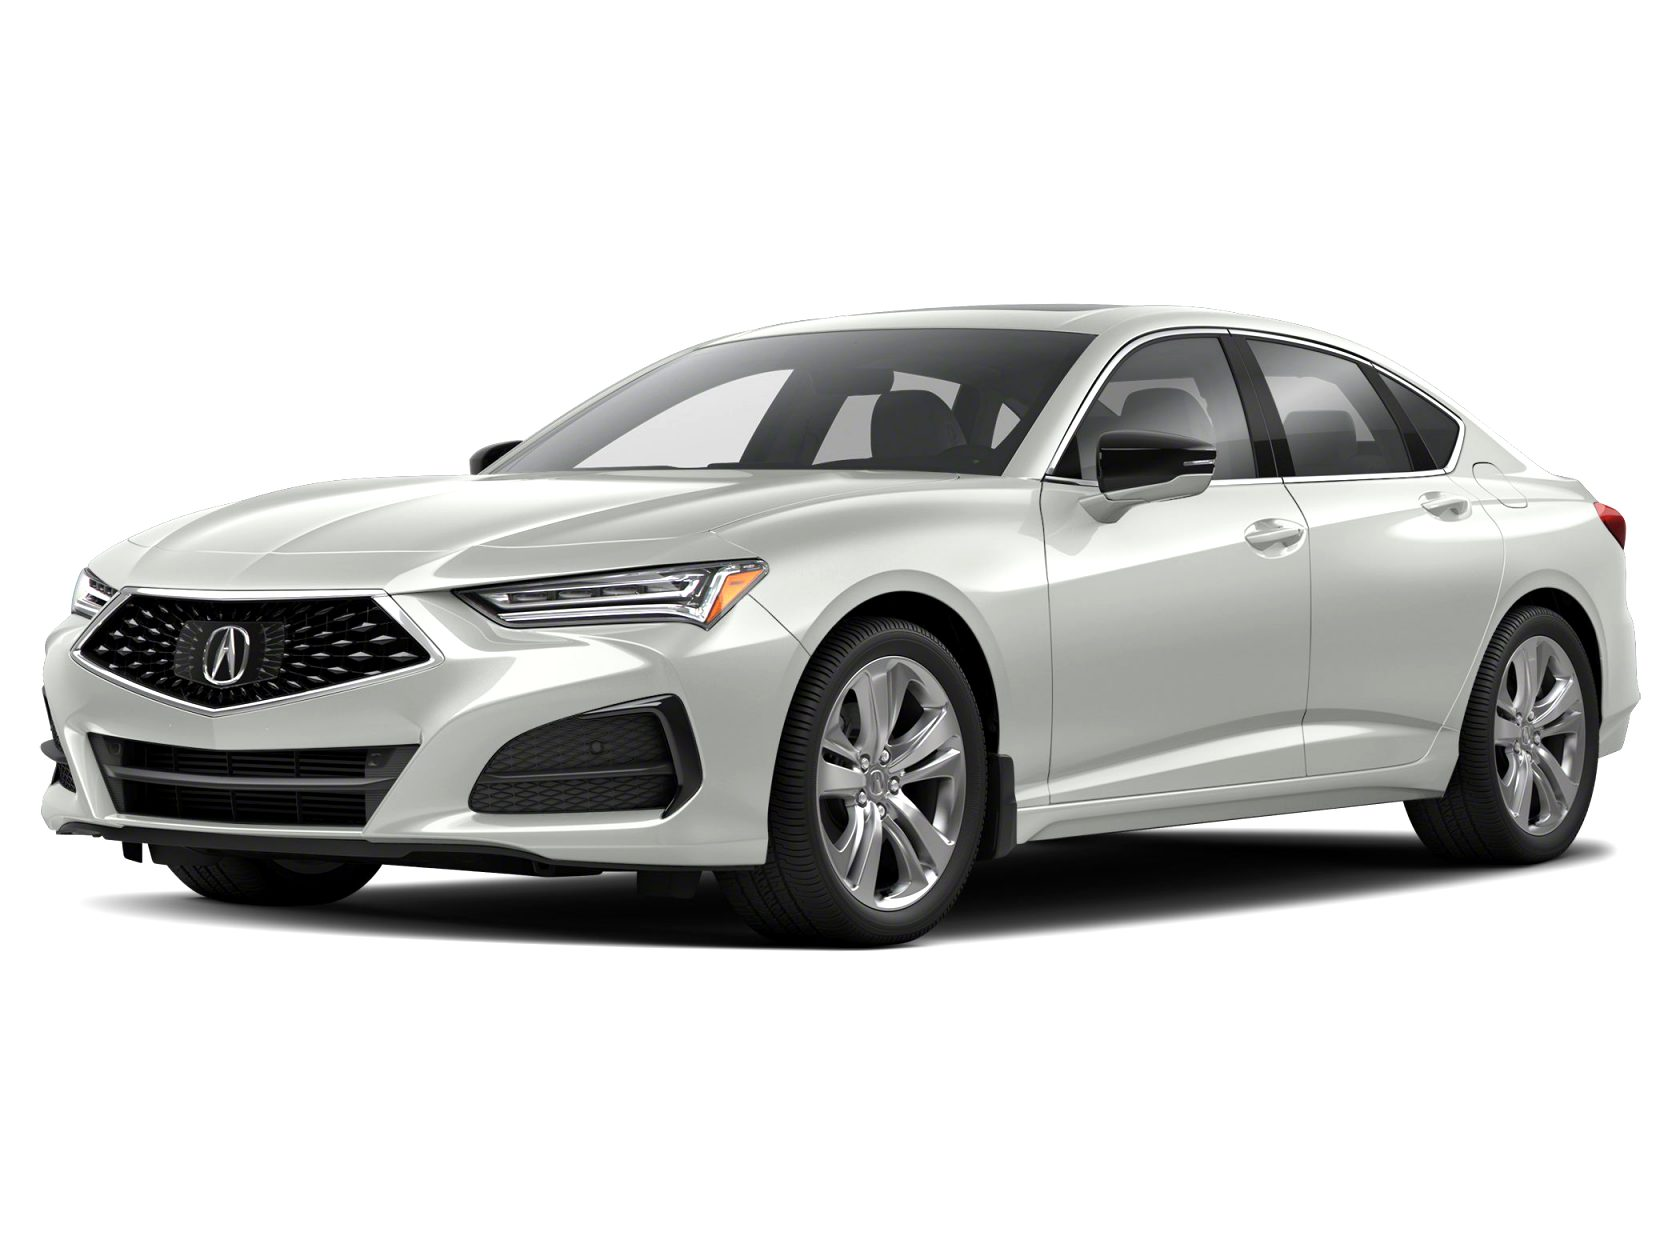 2021 acura vin number Research New